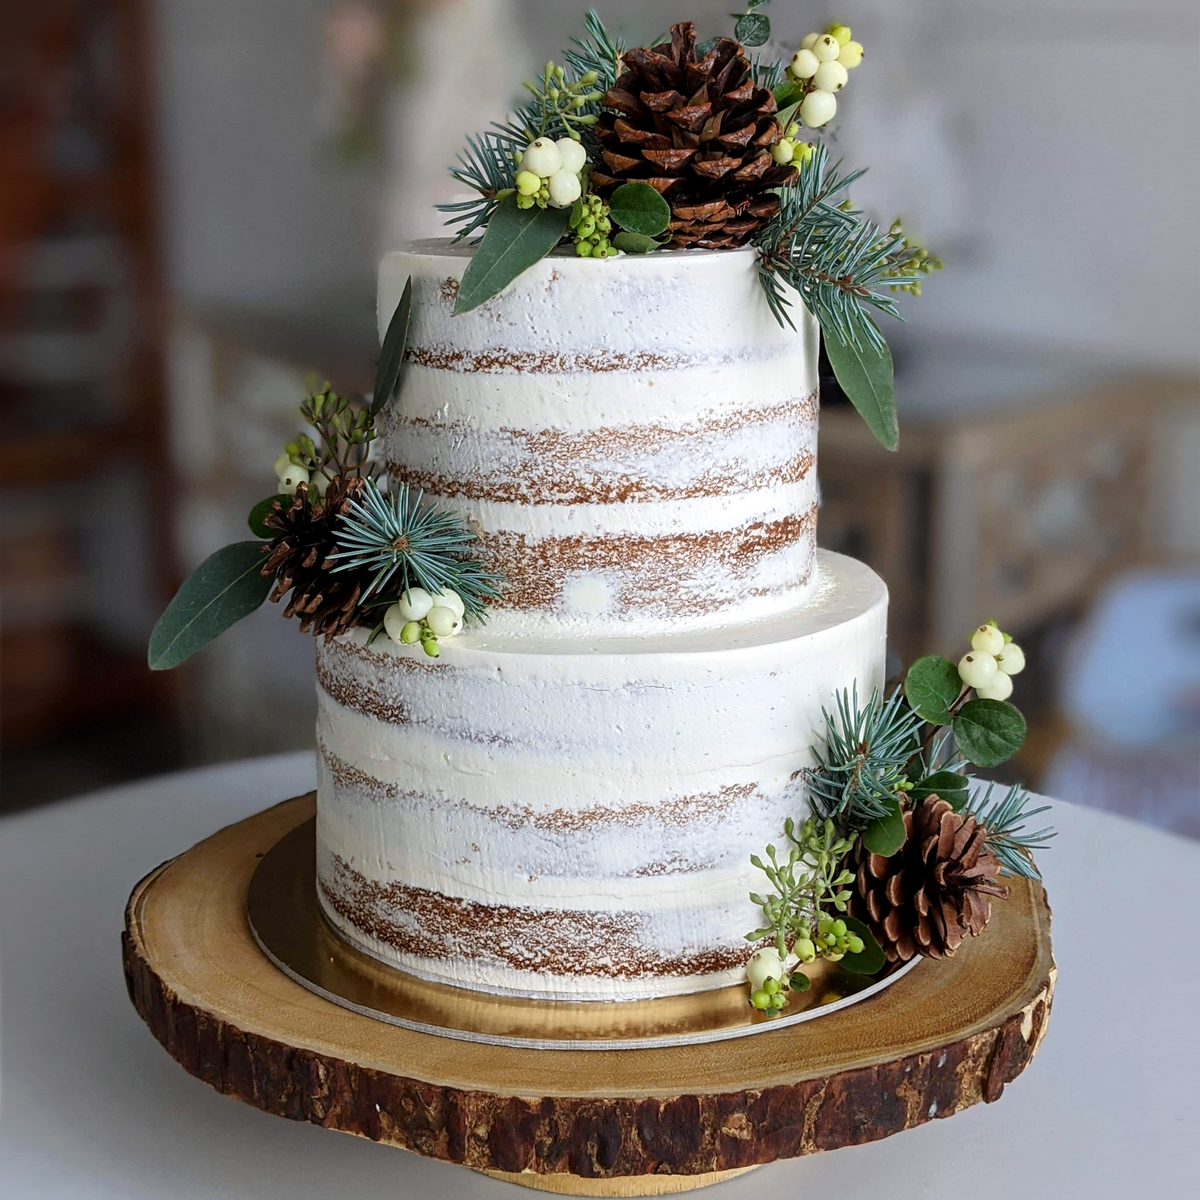 Whippt Kitchen - rustic wedding cake Sept 2020 2